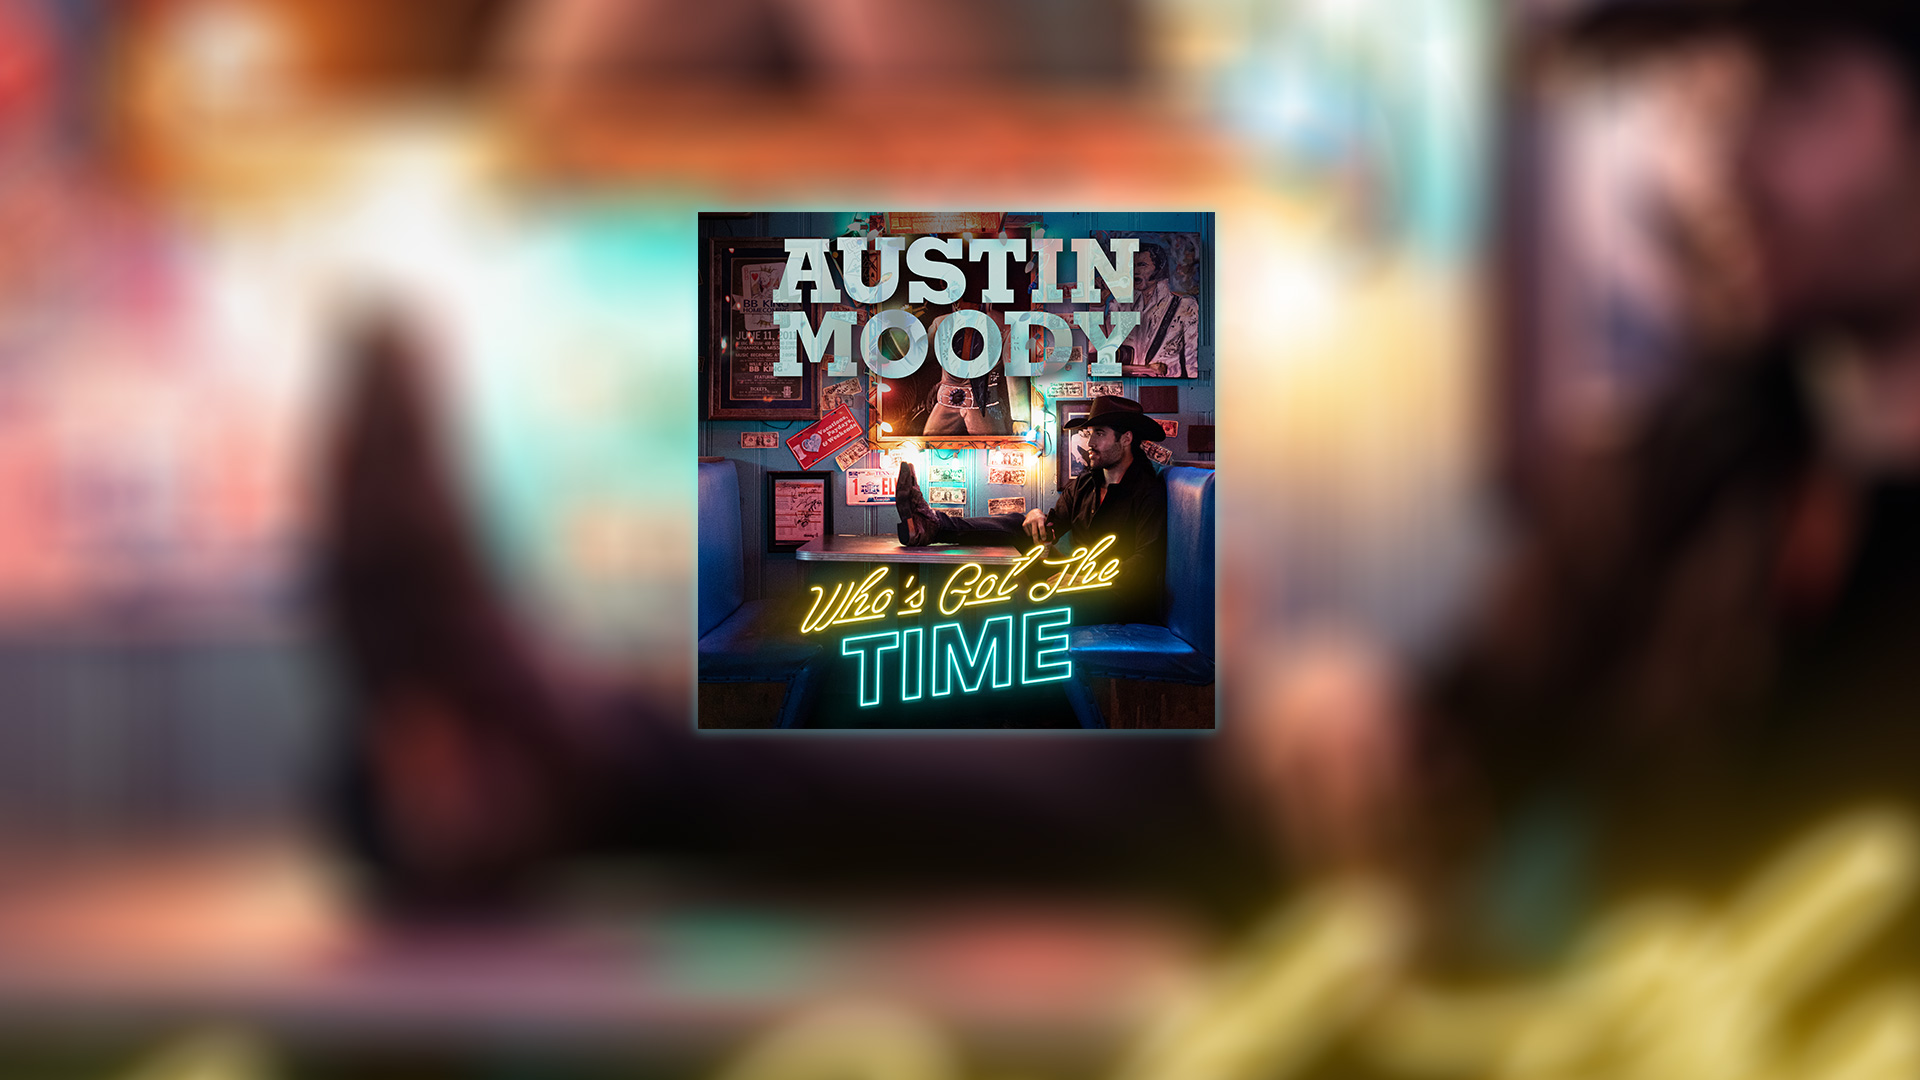 Who's Got The Time The new single by Austin Moody